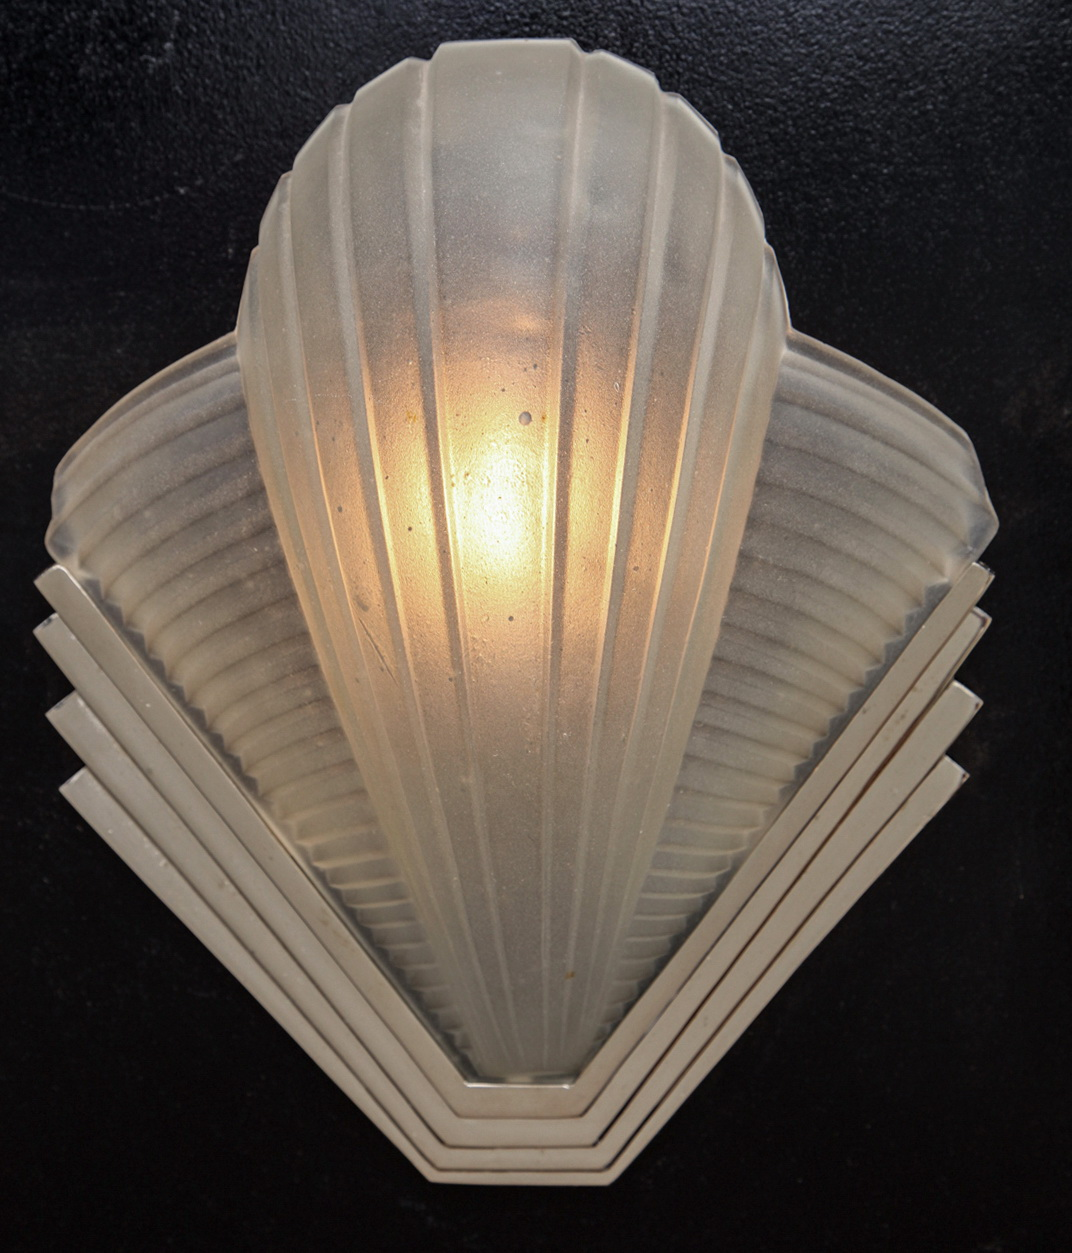 Art Deco Sconces Reproduction : art deco sconces reproduction - www.canuckmediamonitor.org